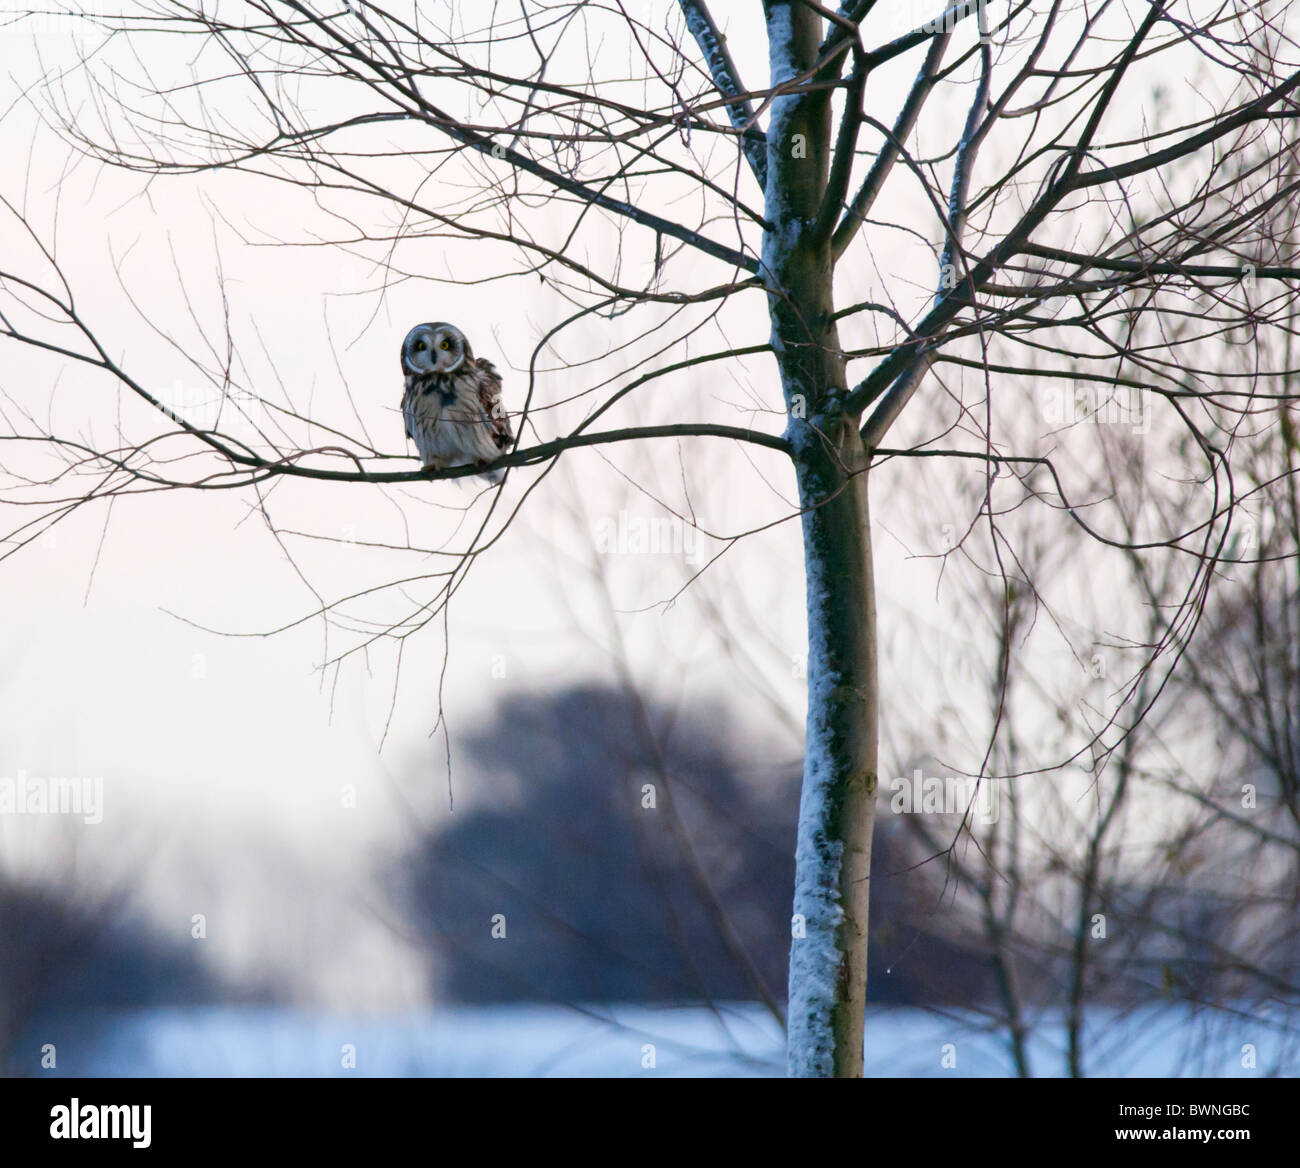 Wild Short Eared Owl perched in tree in Leicestershire - Stock Image